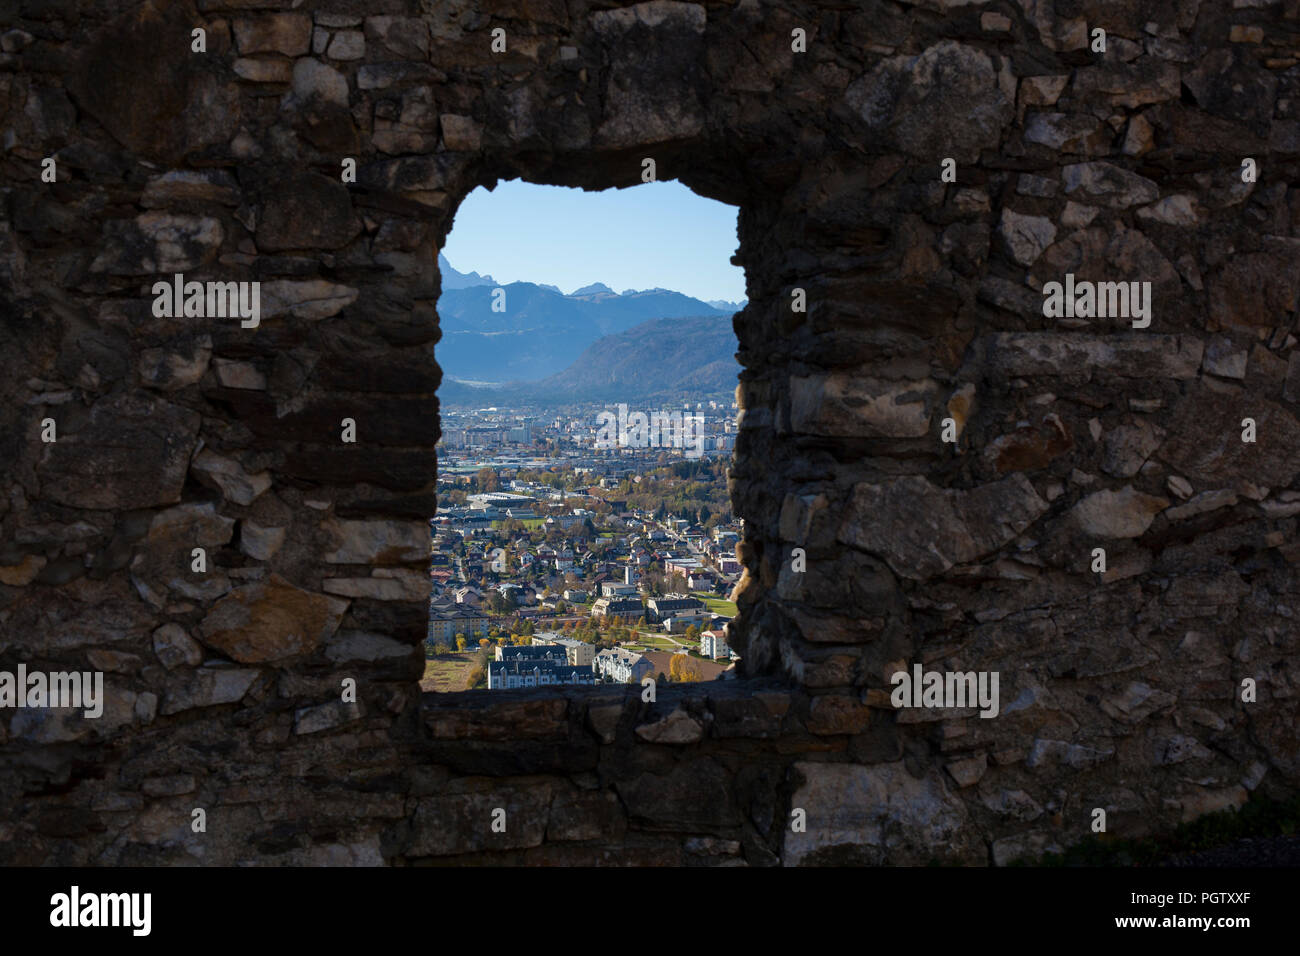 A view to the city of Villach throug the window of Burg Landskron castle Stock Photo